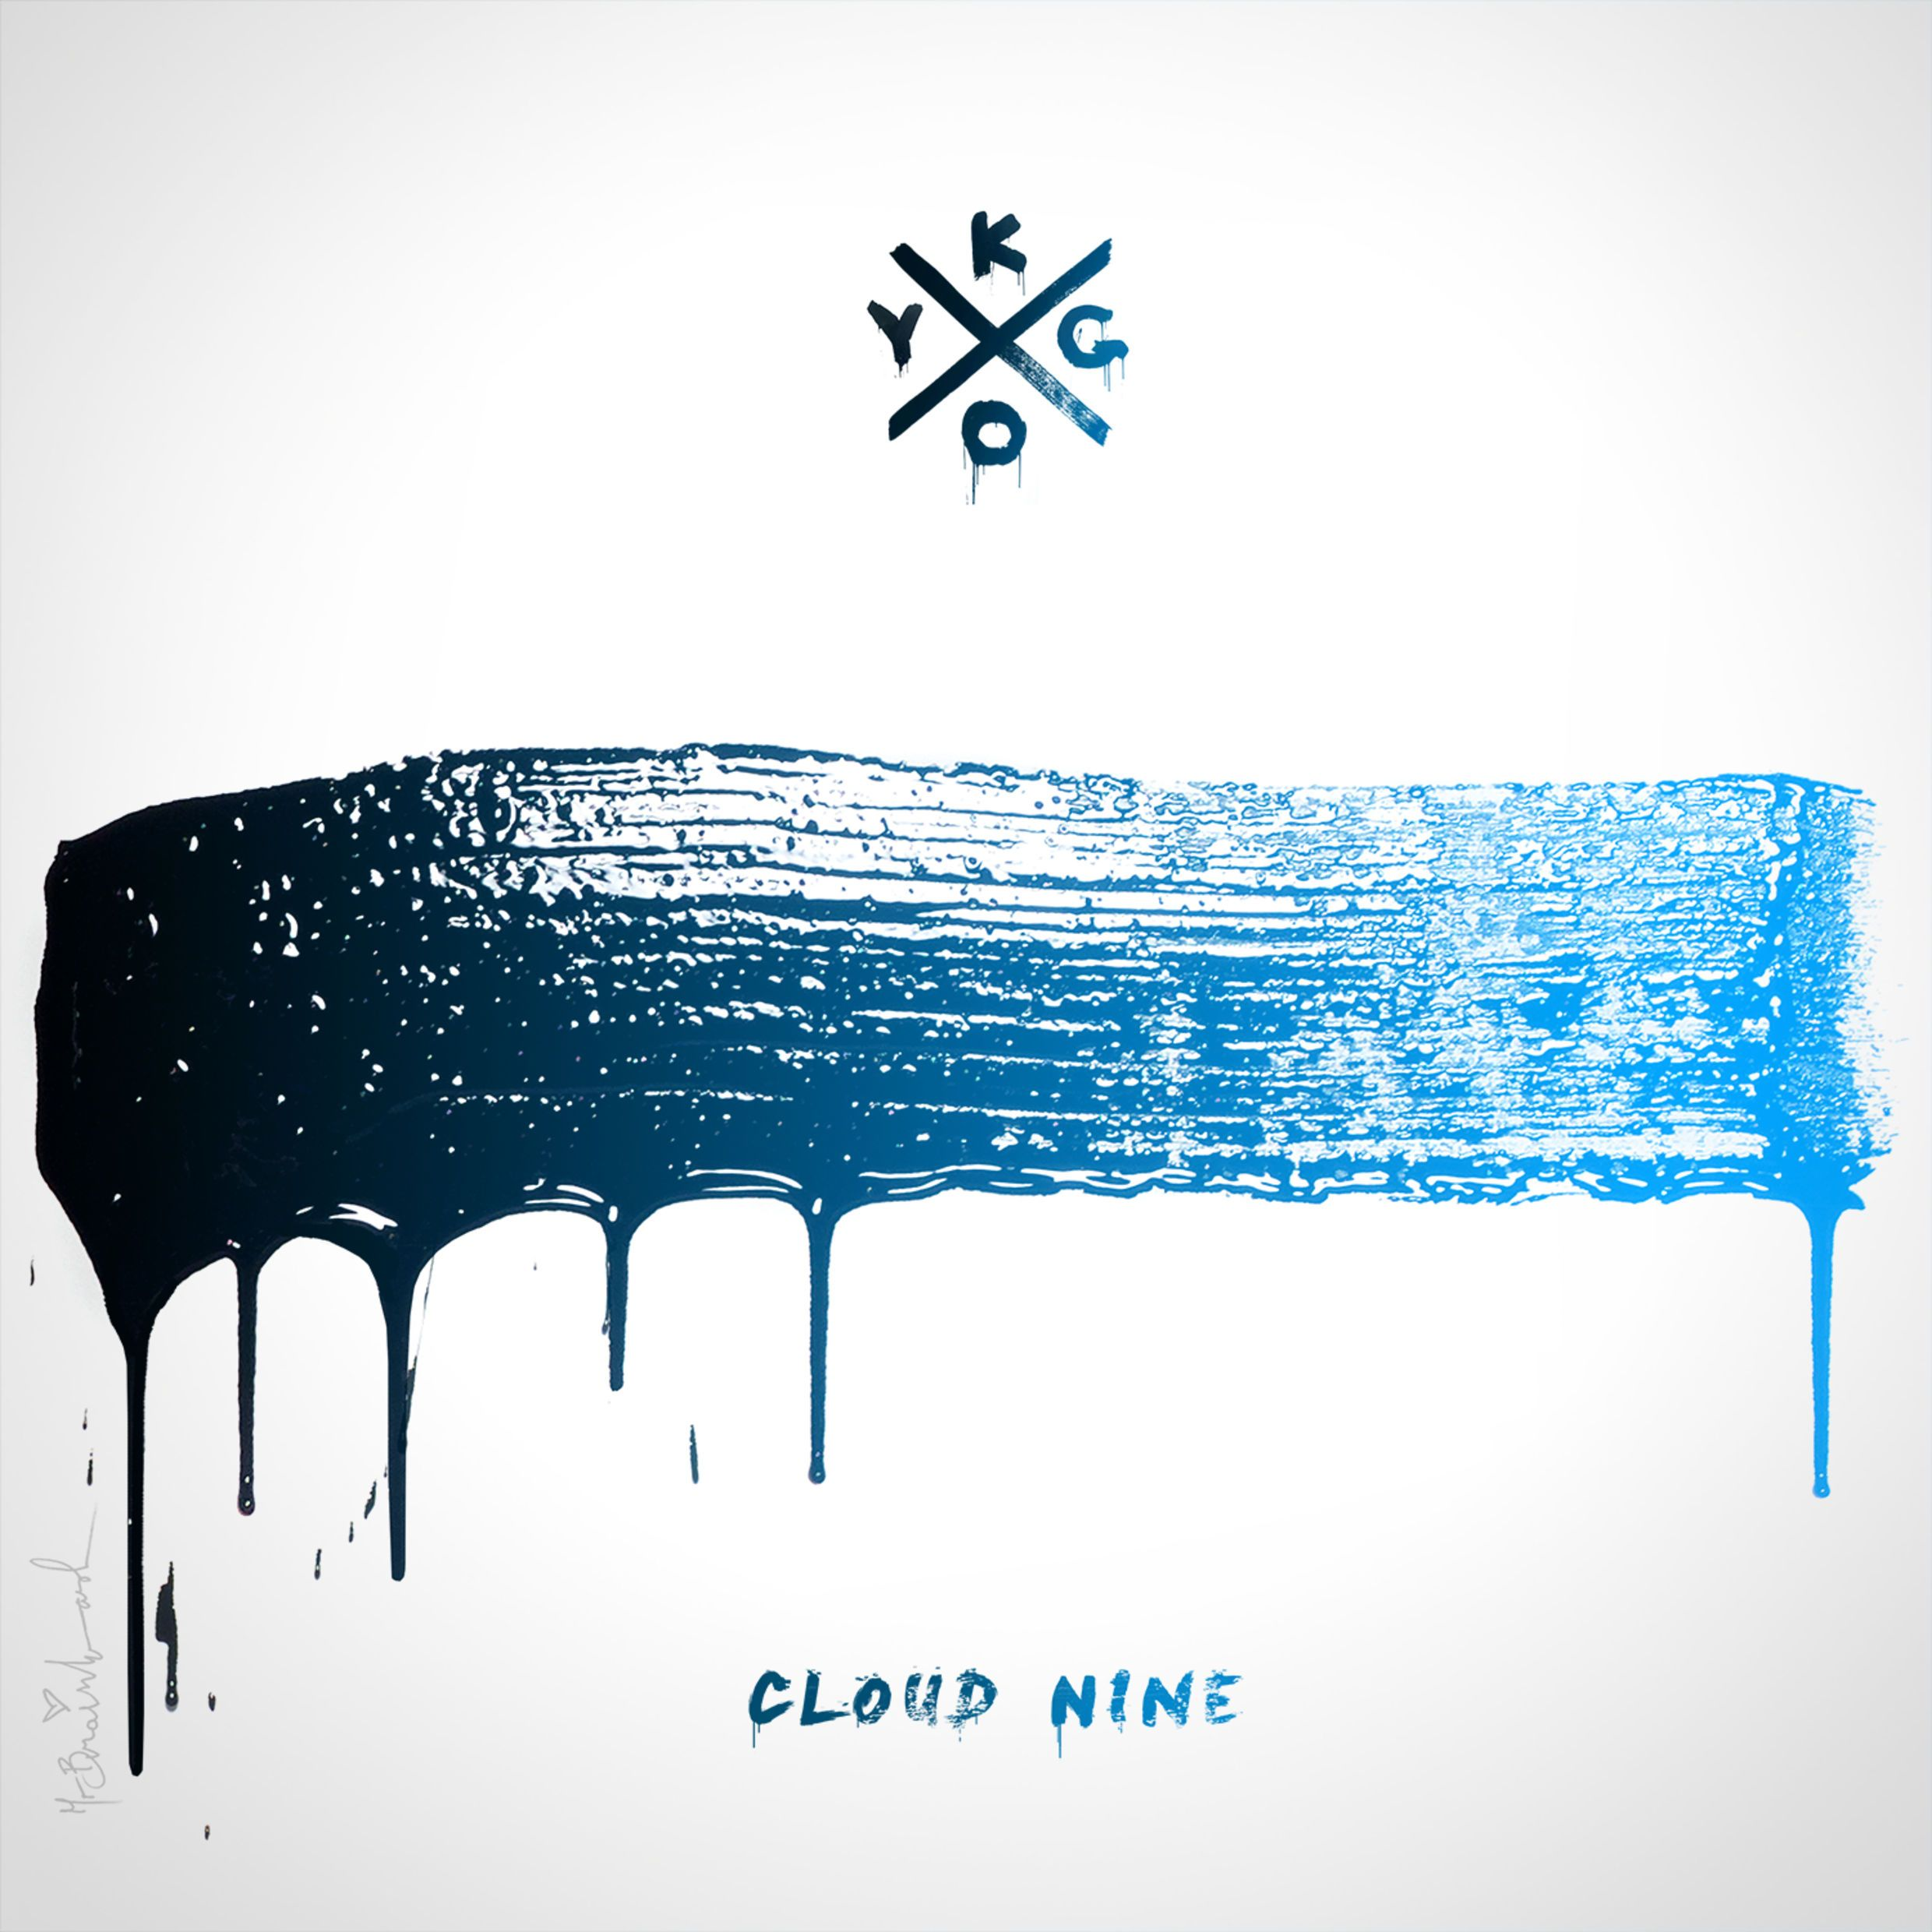 Kygo - Cloud Nine album cover